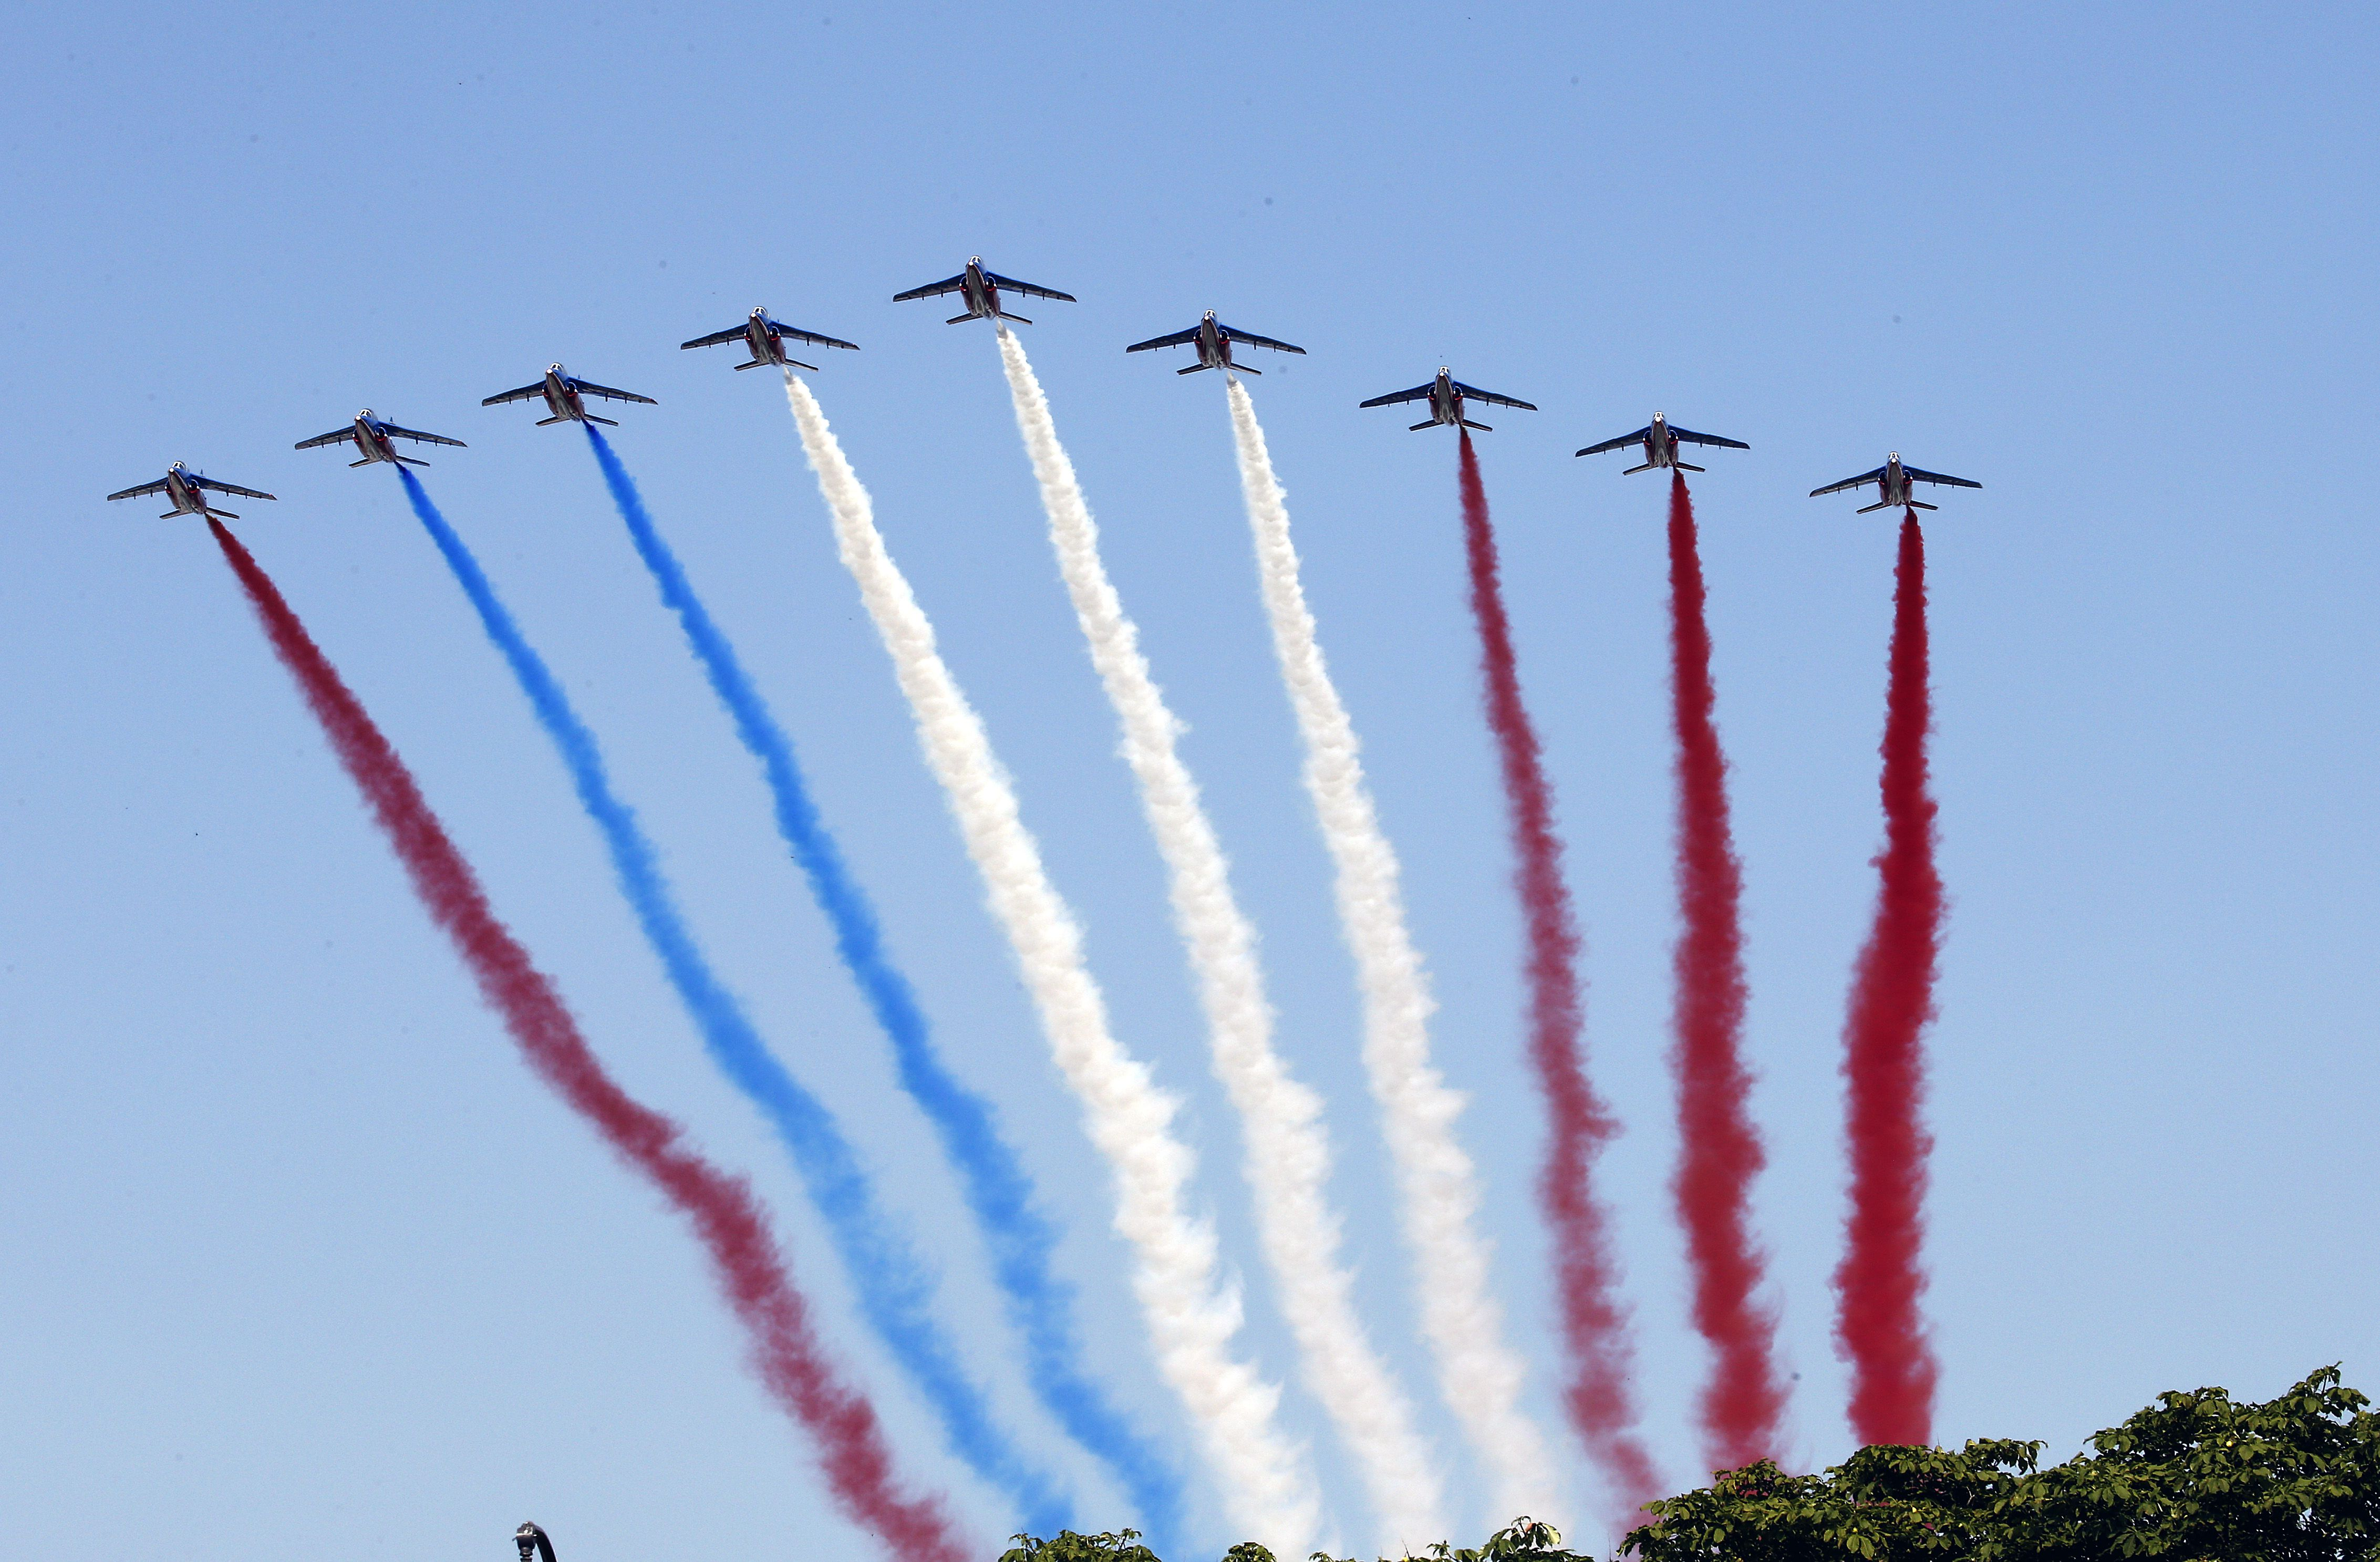 The traditional Bastille day fly over